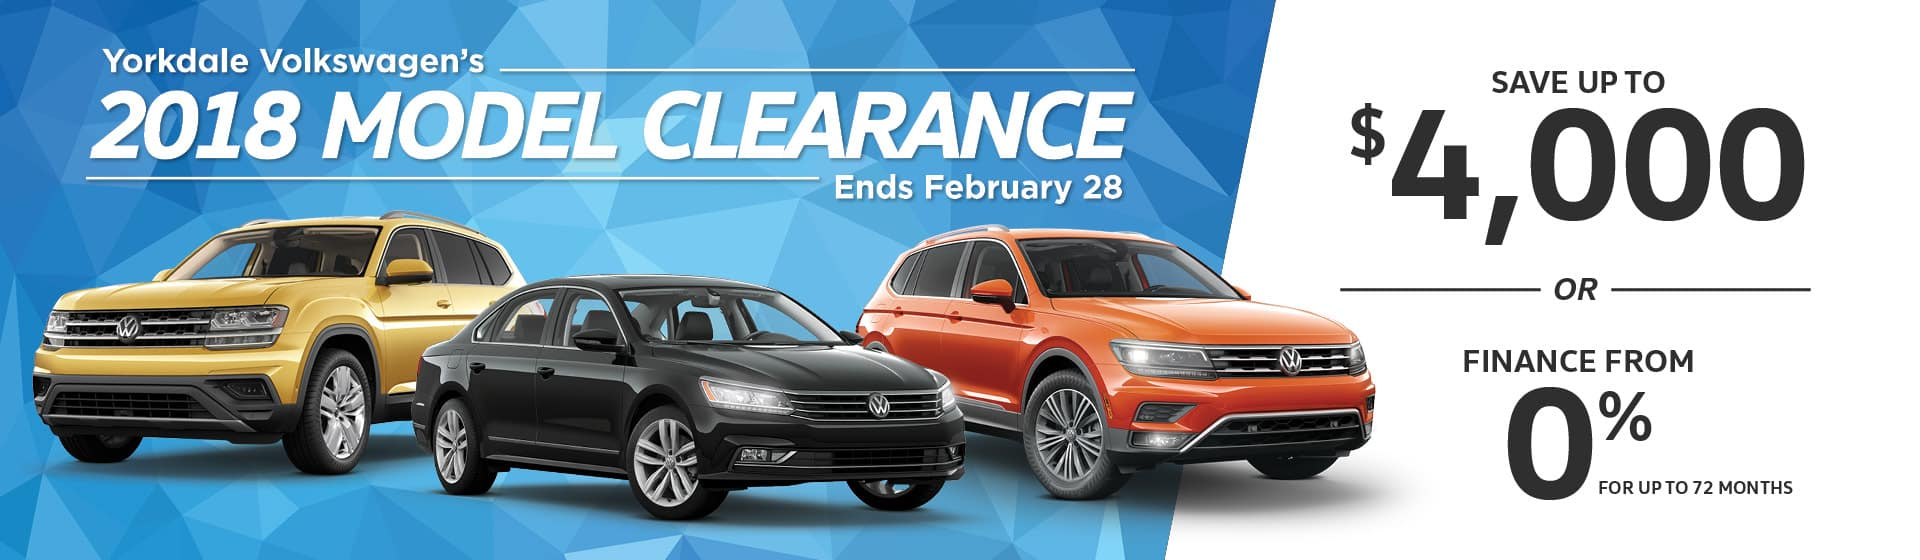 2018 Model Clearance Ends February 28th